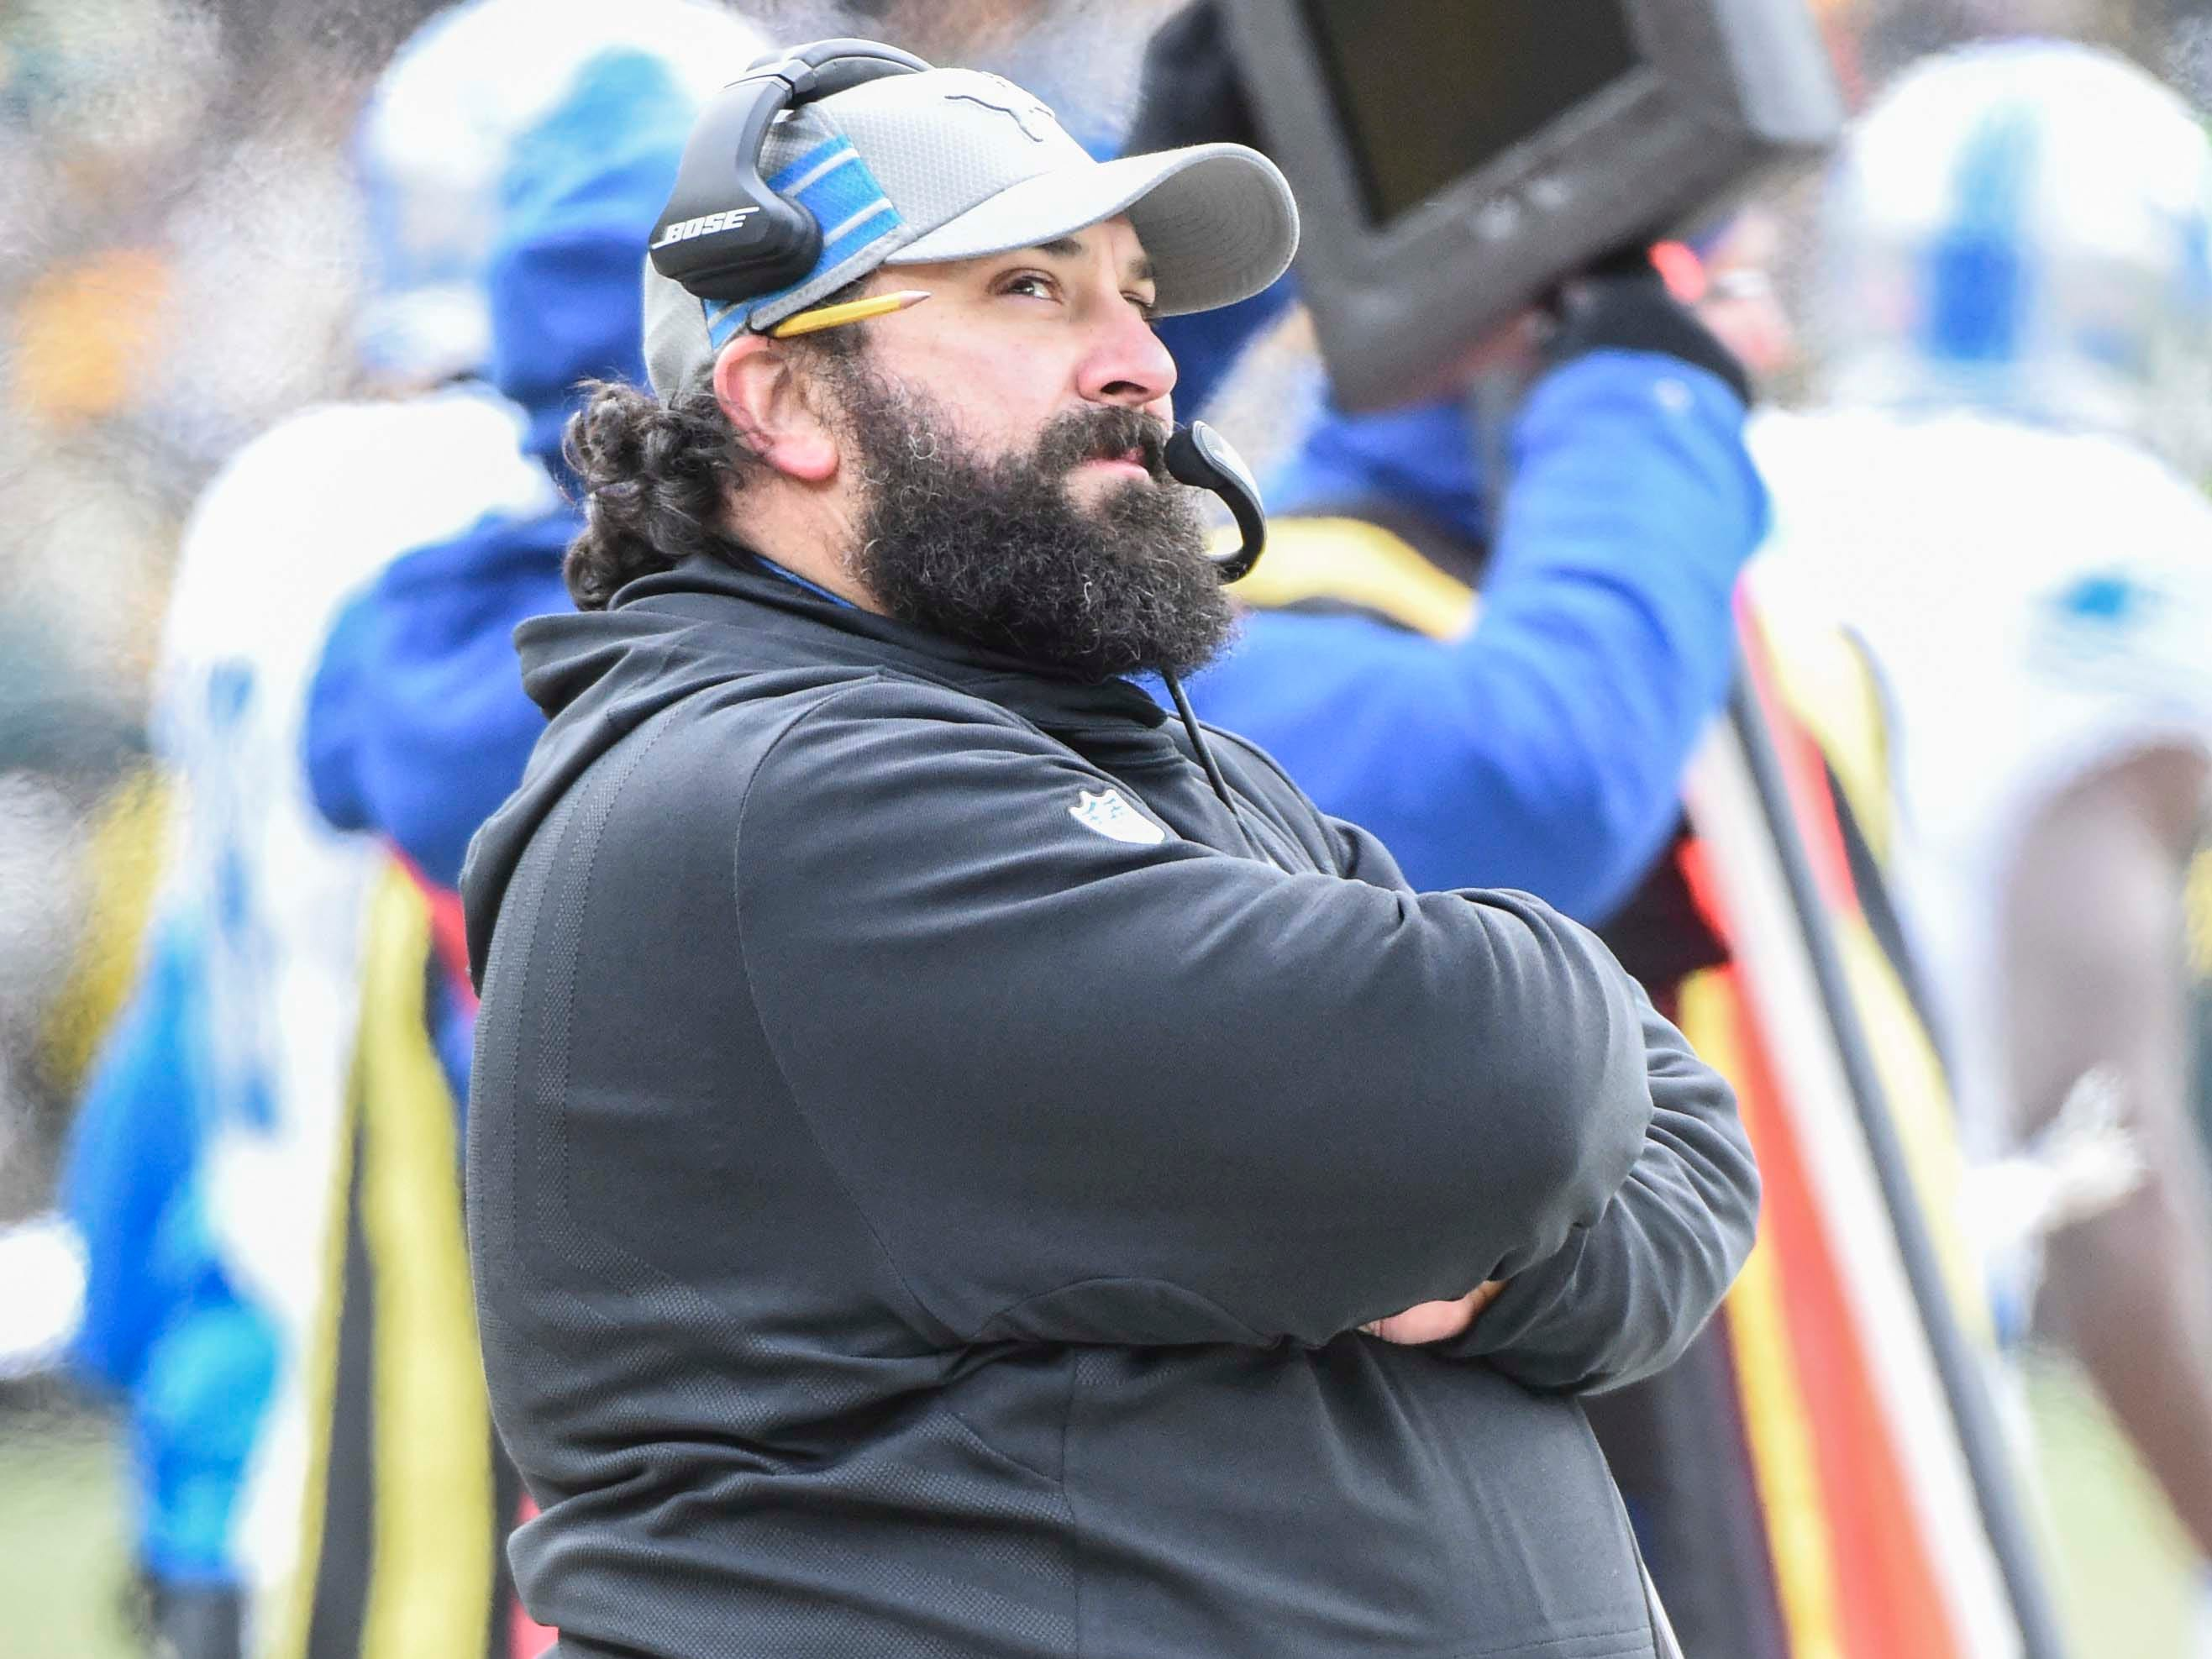 29. Lions (28): Matt Patricia's players didn't respond on field, and he didn't respond to adversity very well away from it. Hot seat will be pre-warmed in 2019.